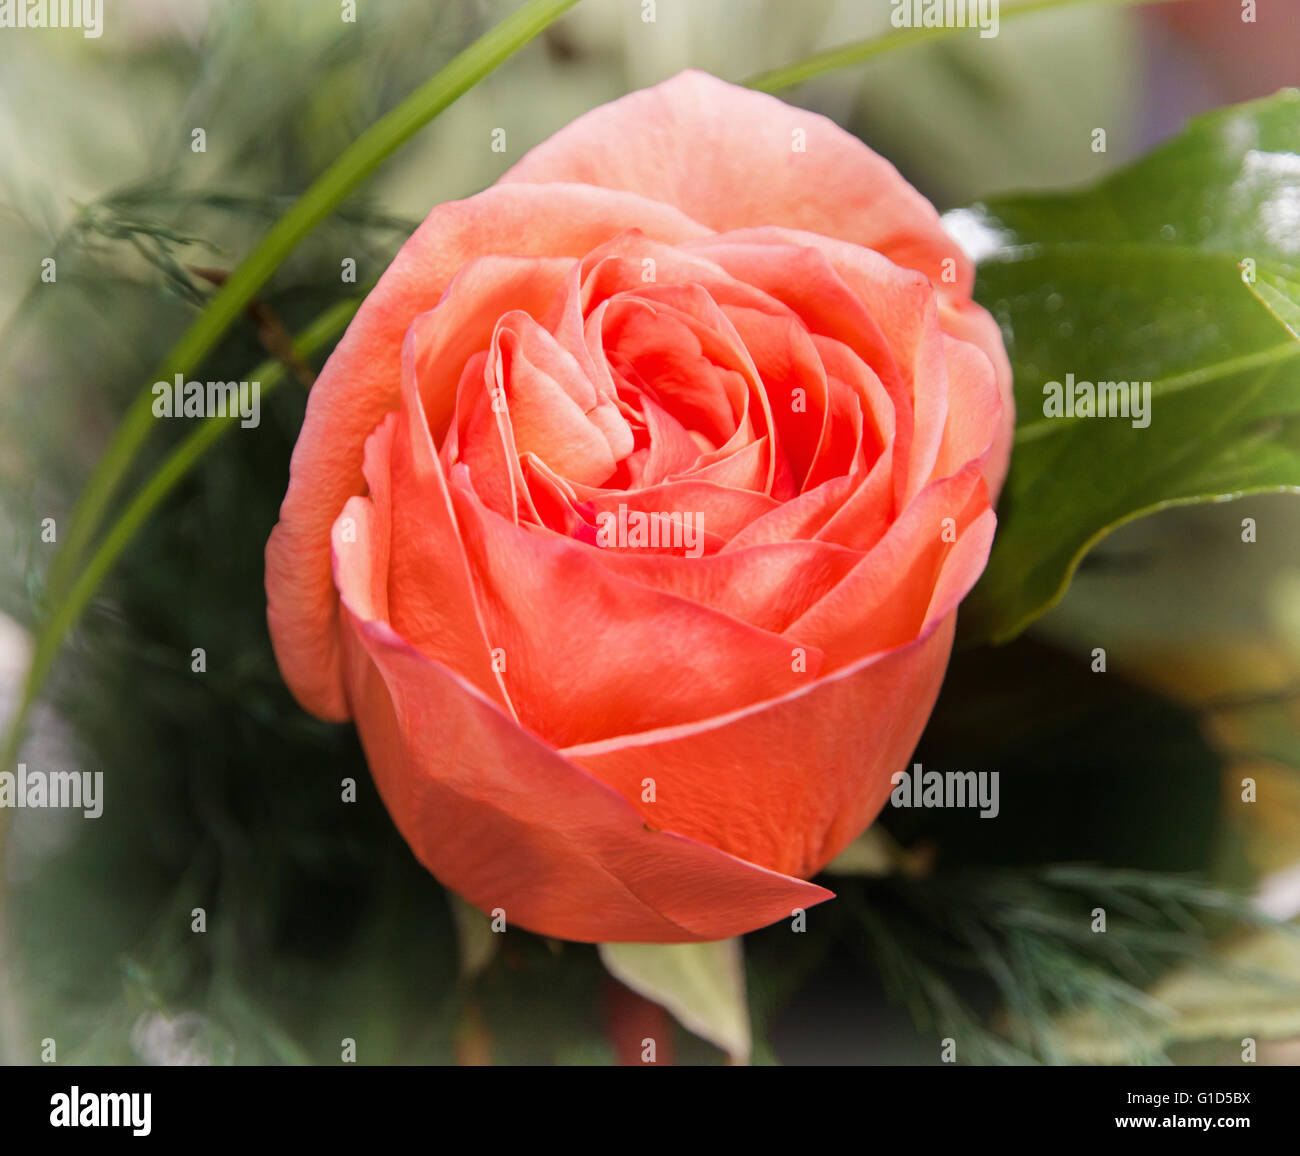 Close up photo of the red rose flower symbol of love vibrant close up photo of the red rose flower symbol of love vibrant colors detailed natural scene beauty in nature for you buycottarizona